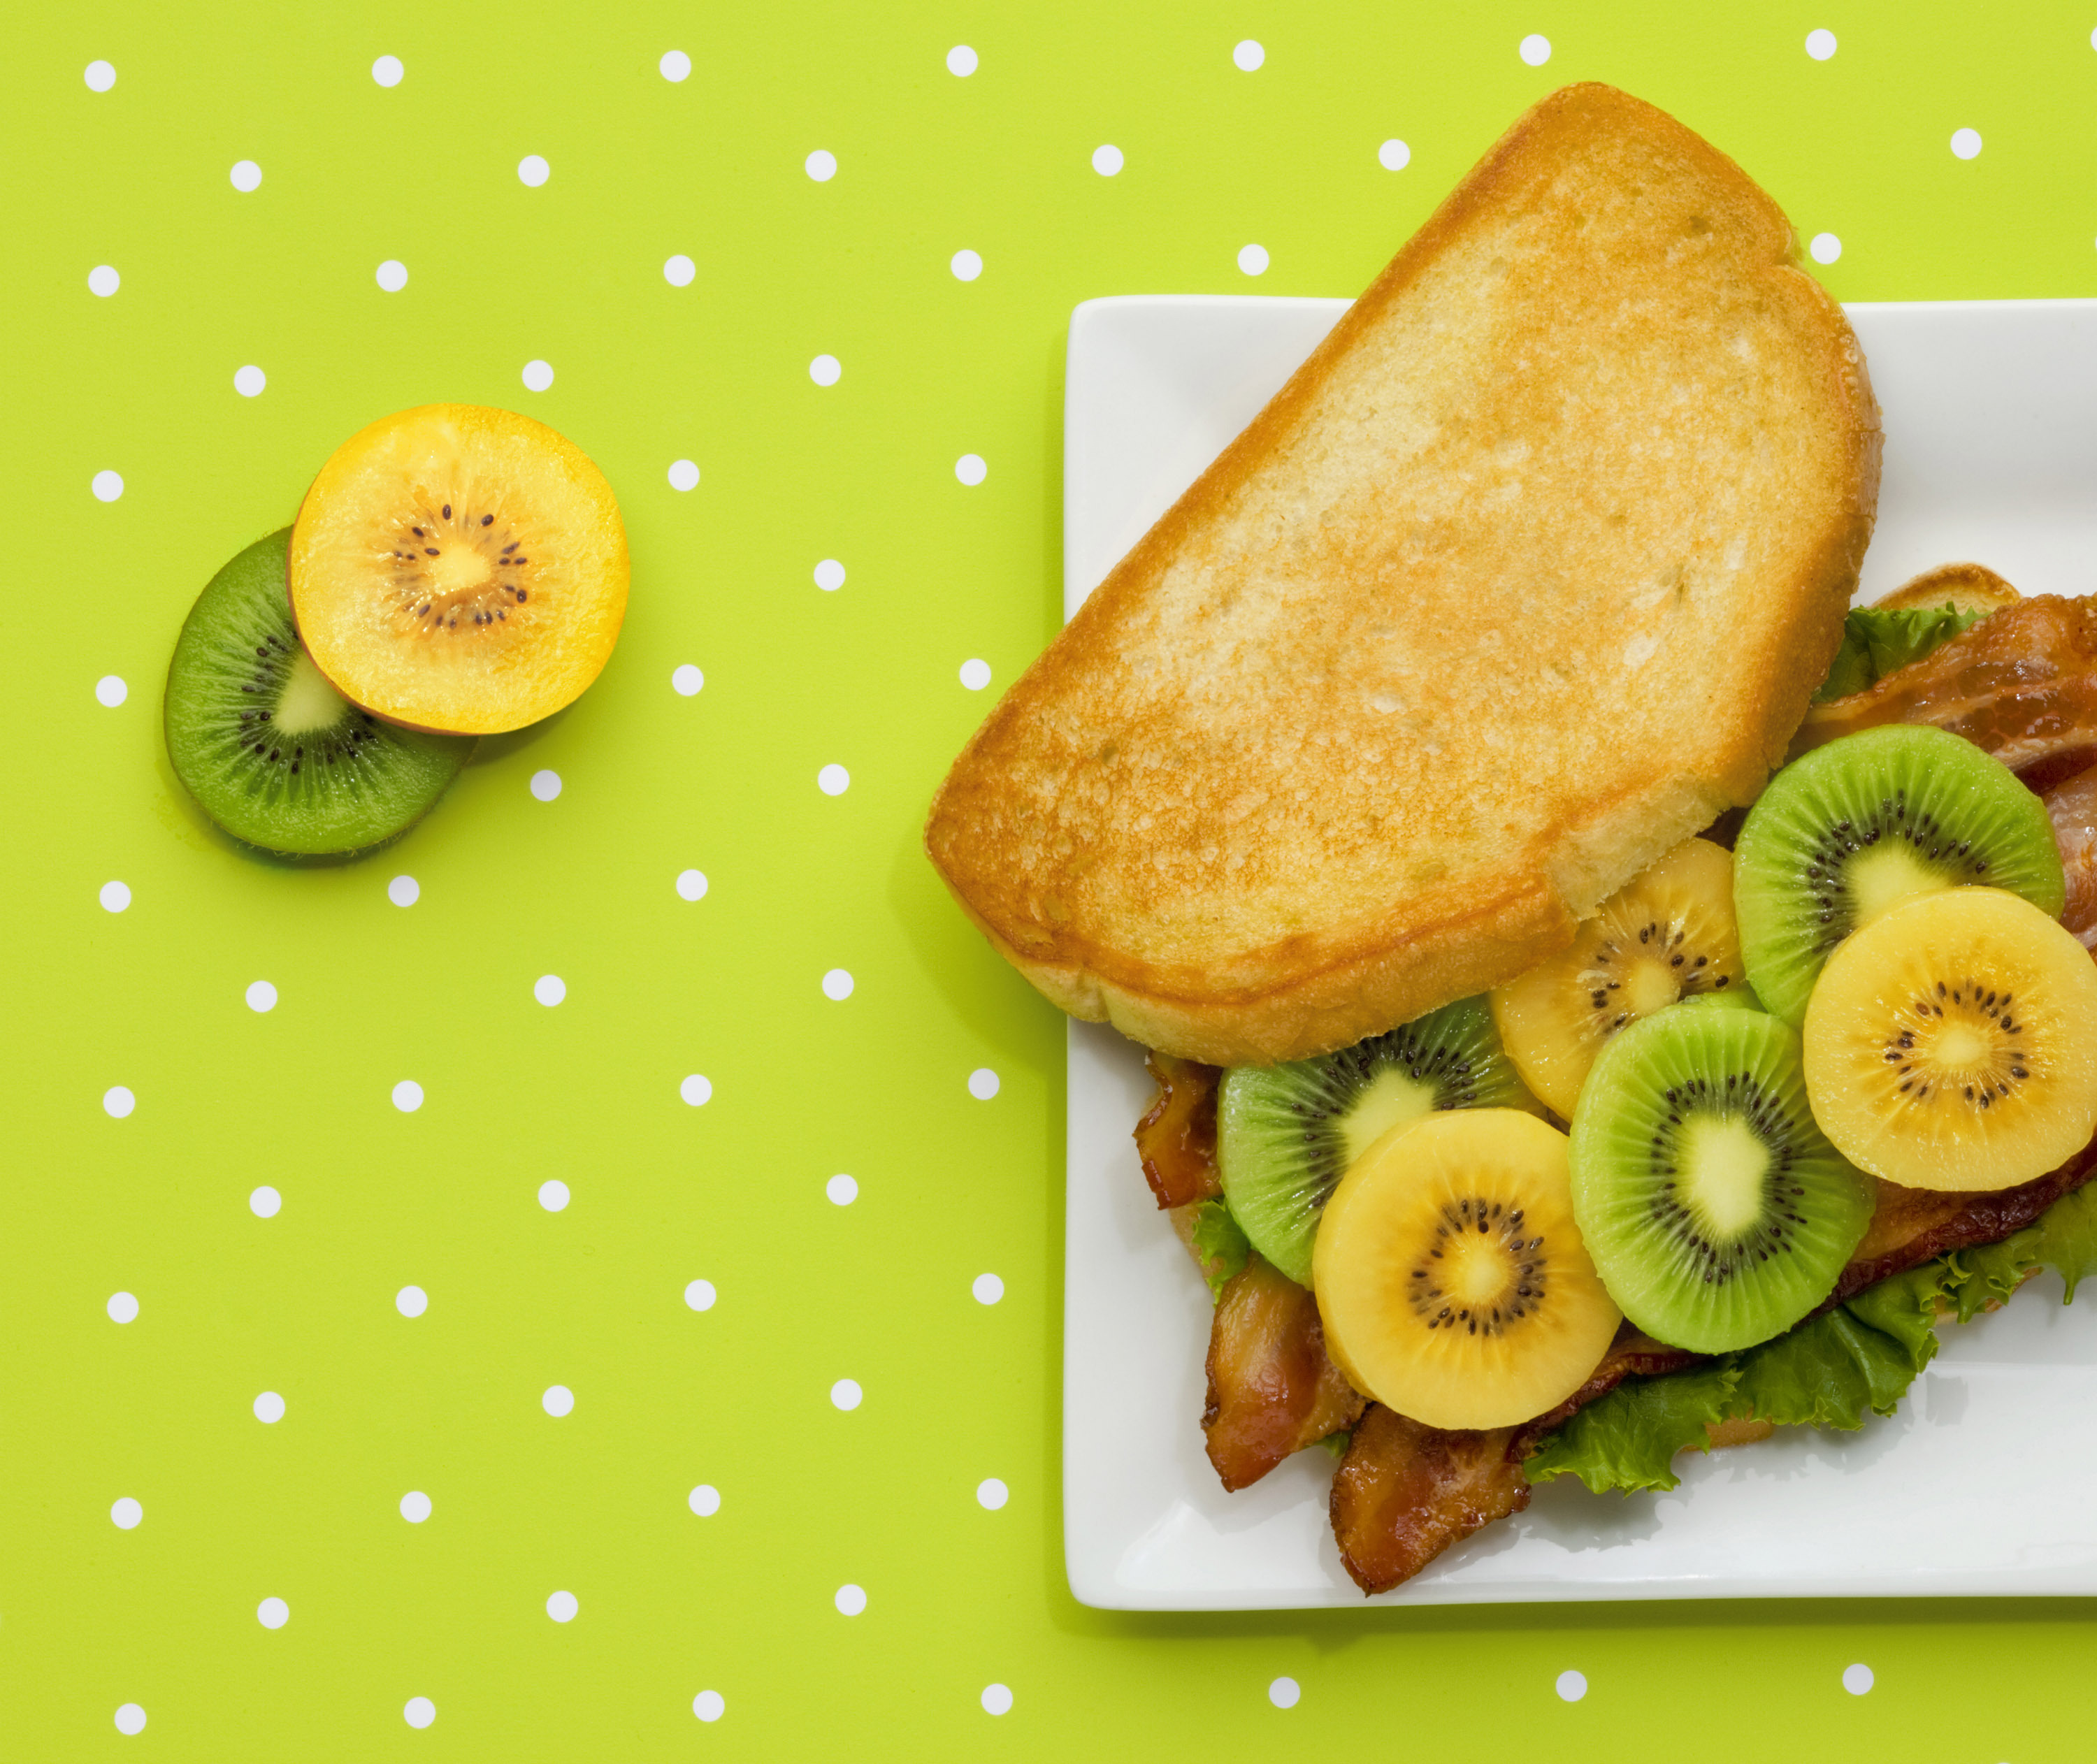 Bacon Lettuce and Kiwifruit Sandwich (BLK). (Photo: Business Wire)